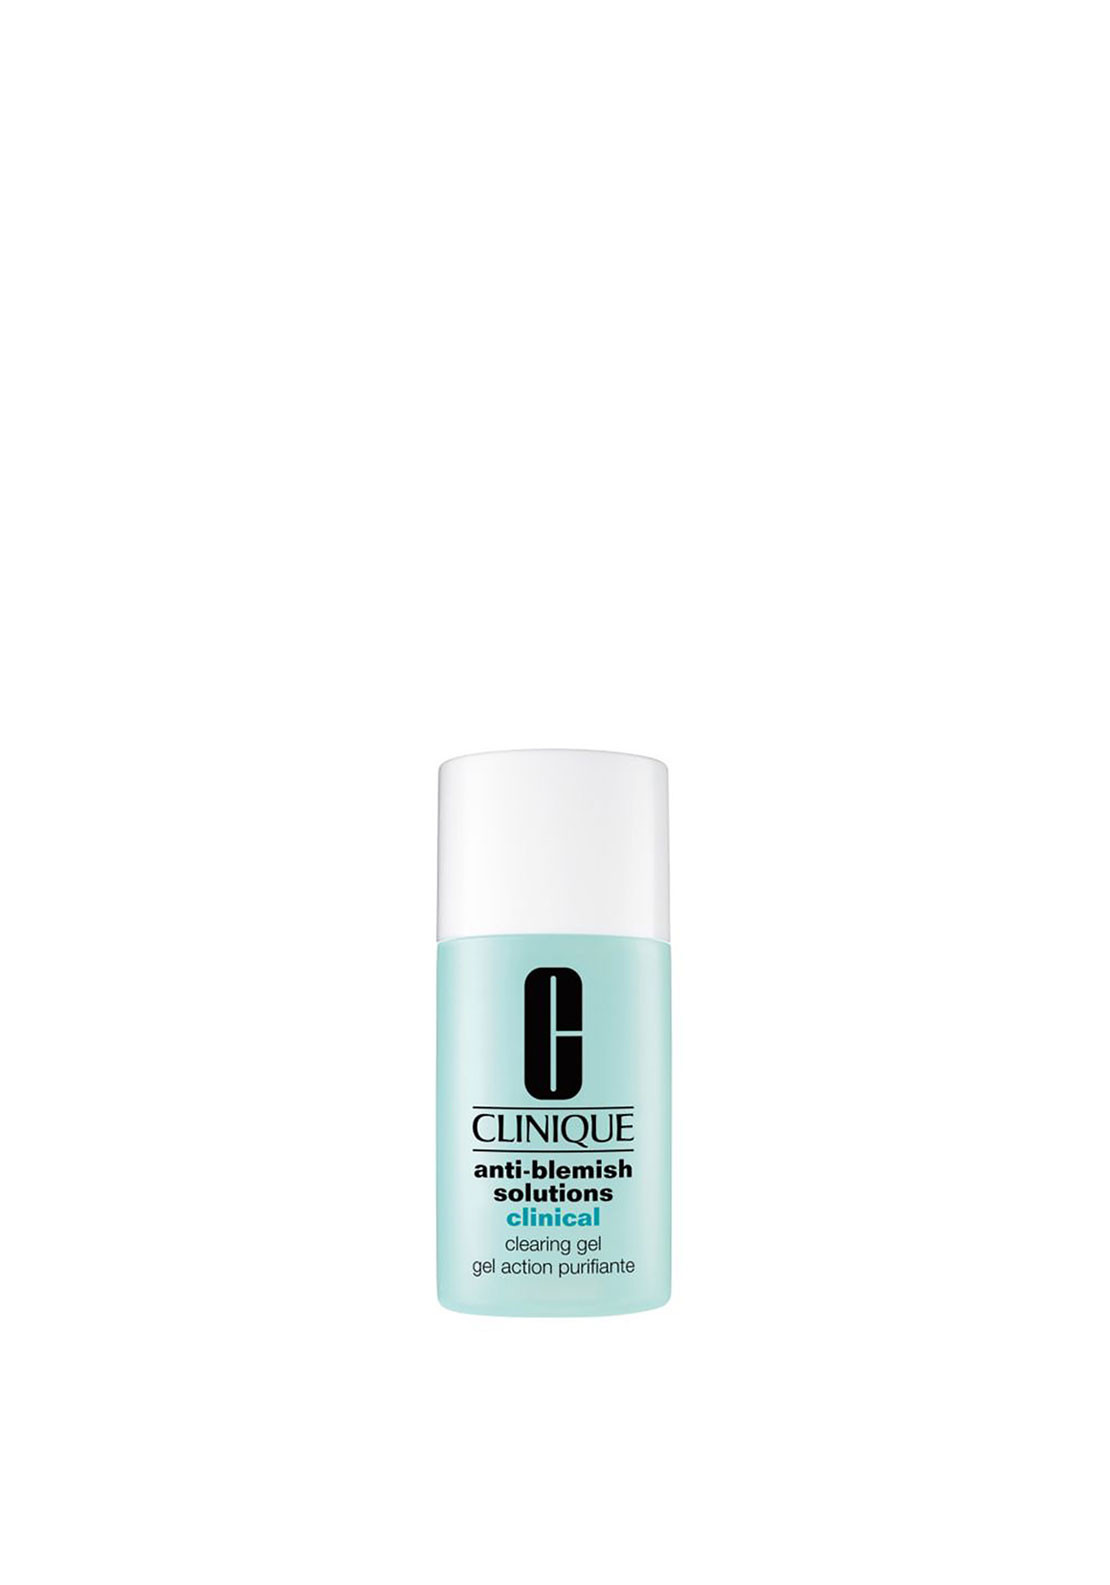 Clinique Anti-Blemish Solutions Clinical Clearing Gel